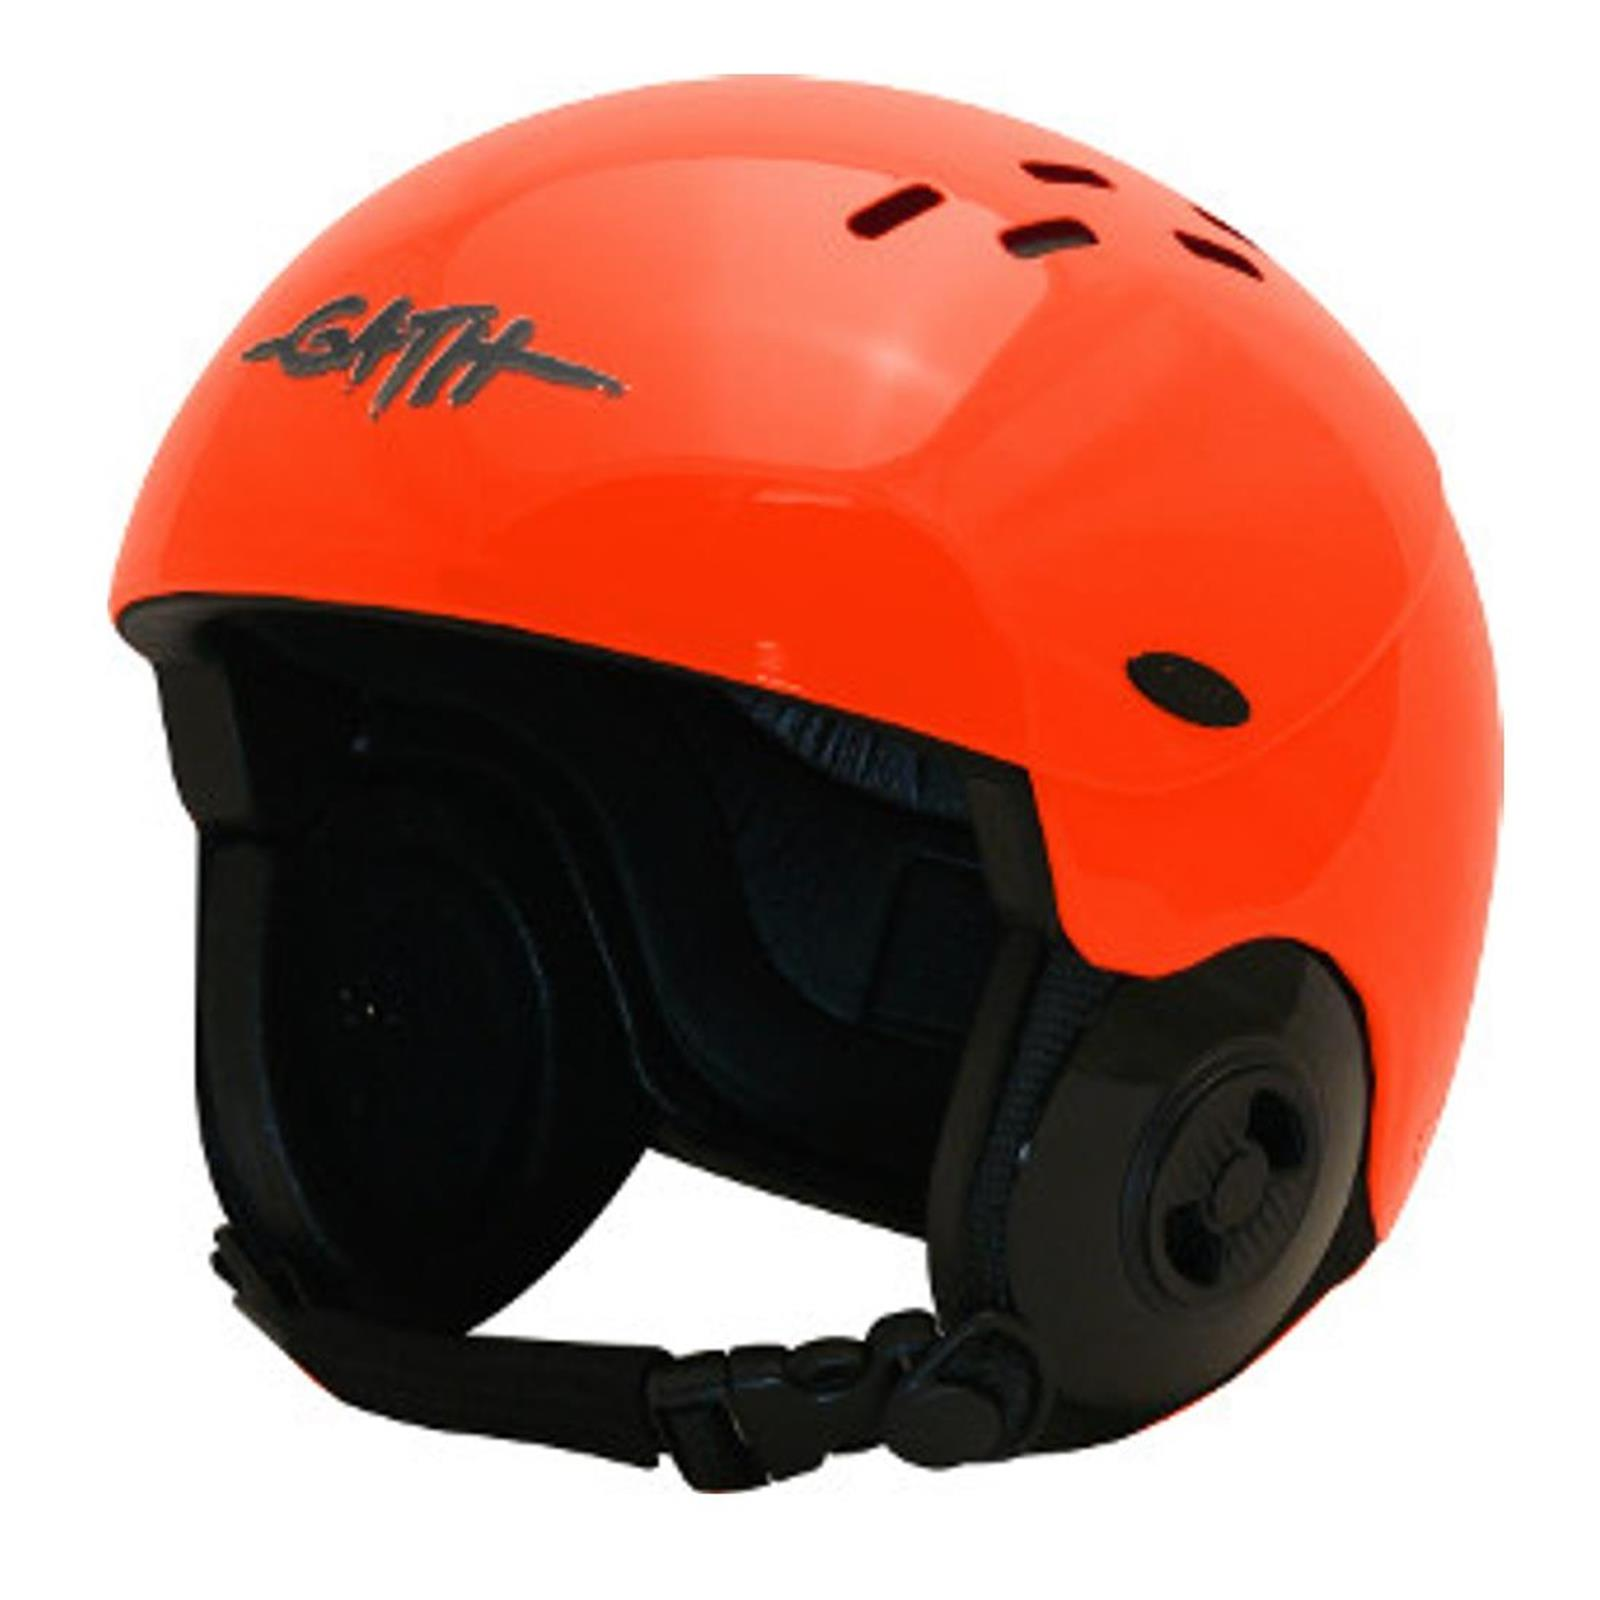 GATH Wassersport Helm GEDI Gr S Orange